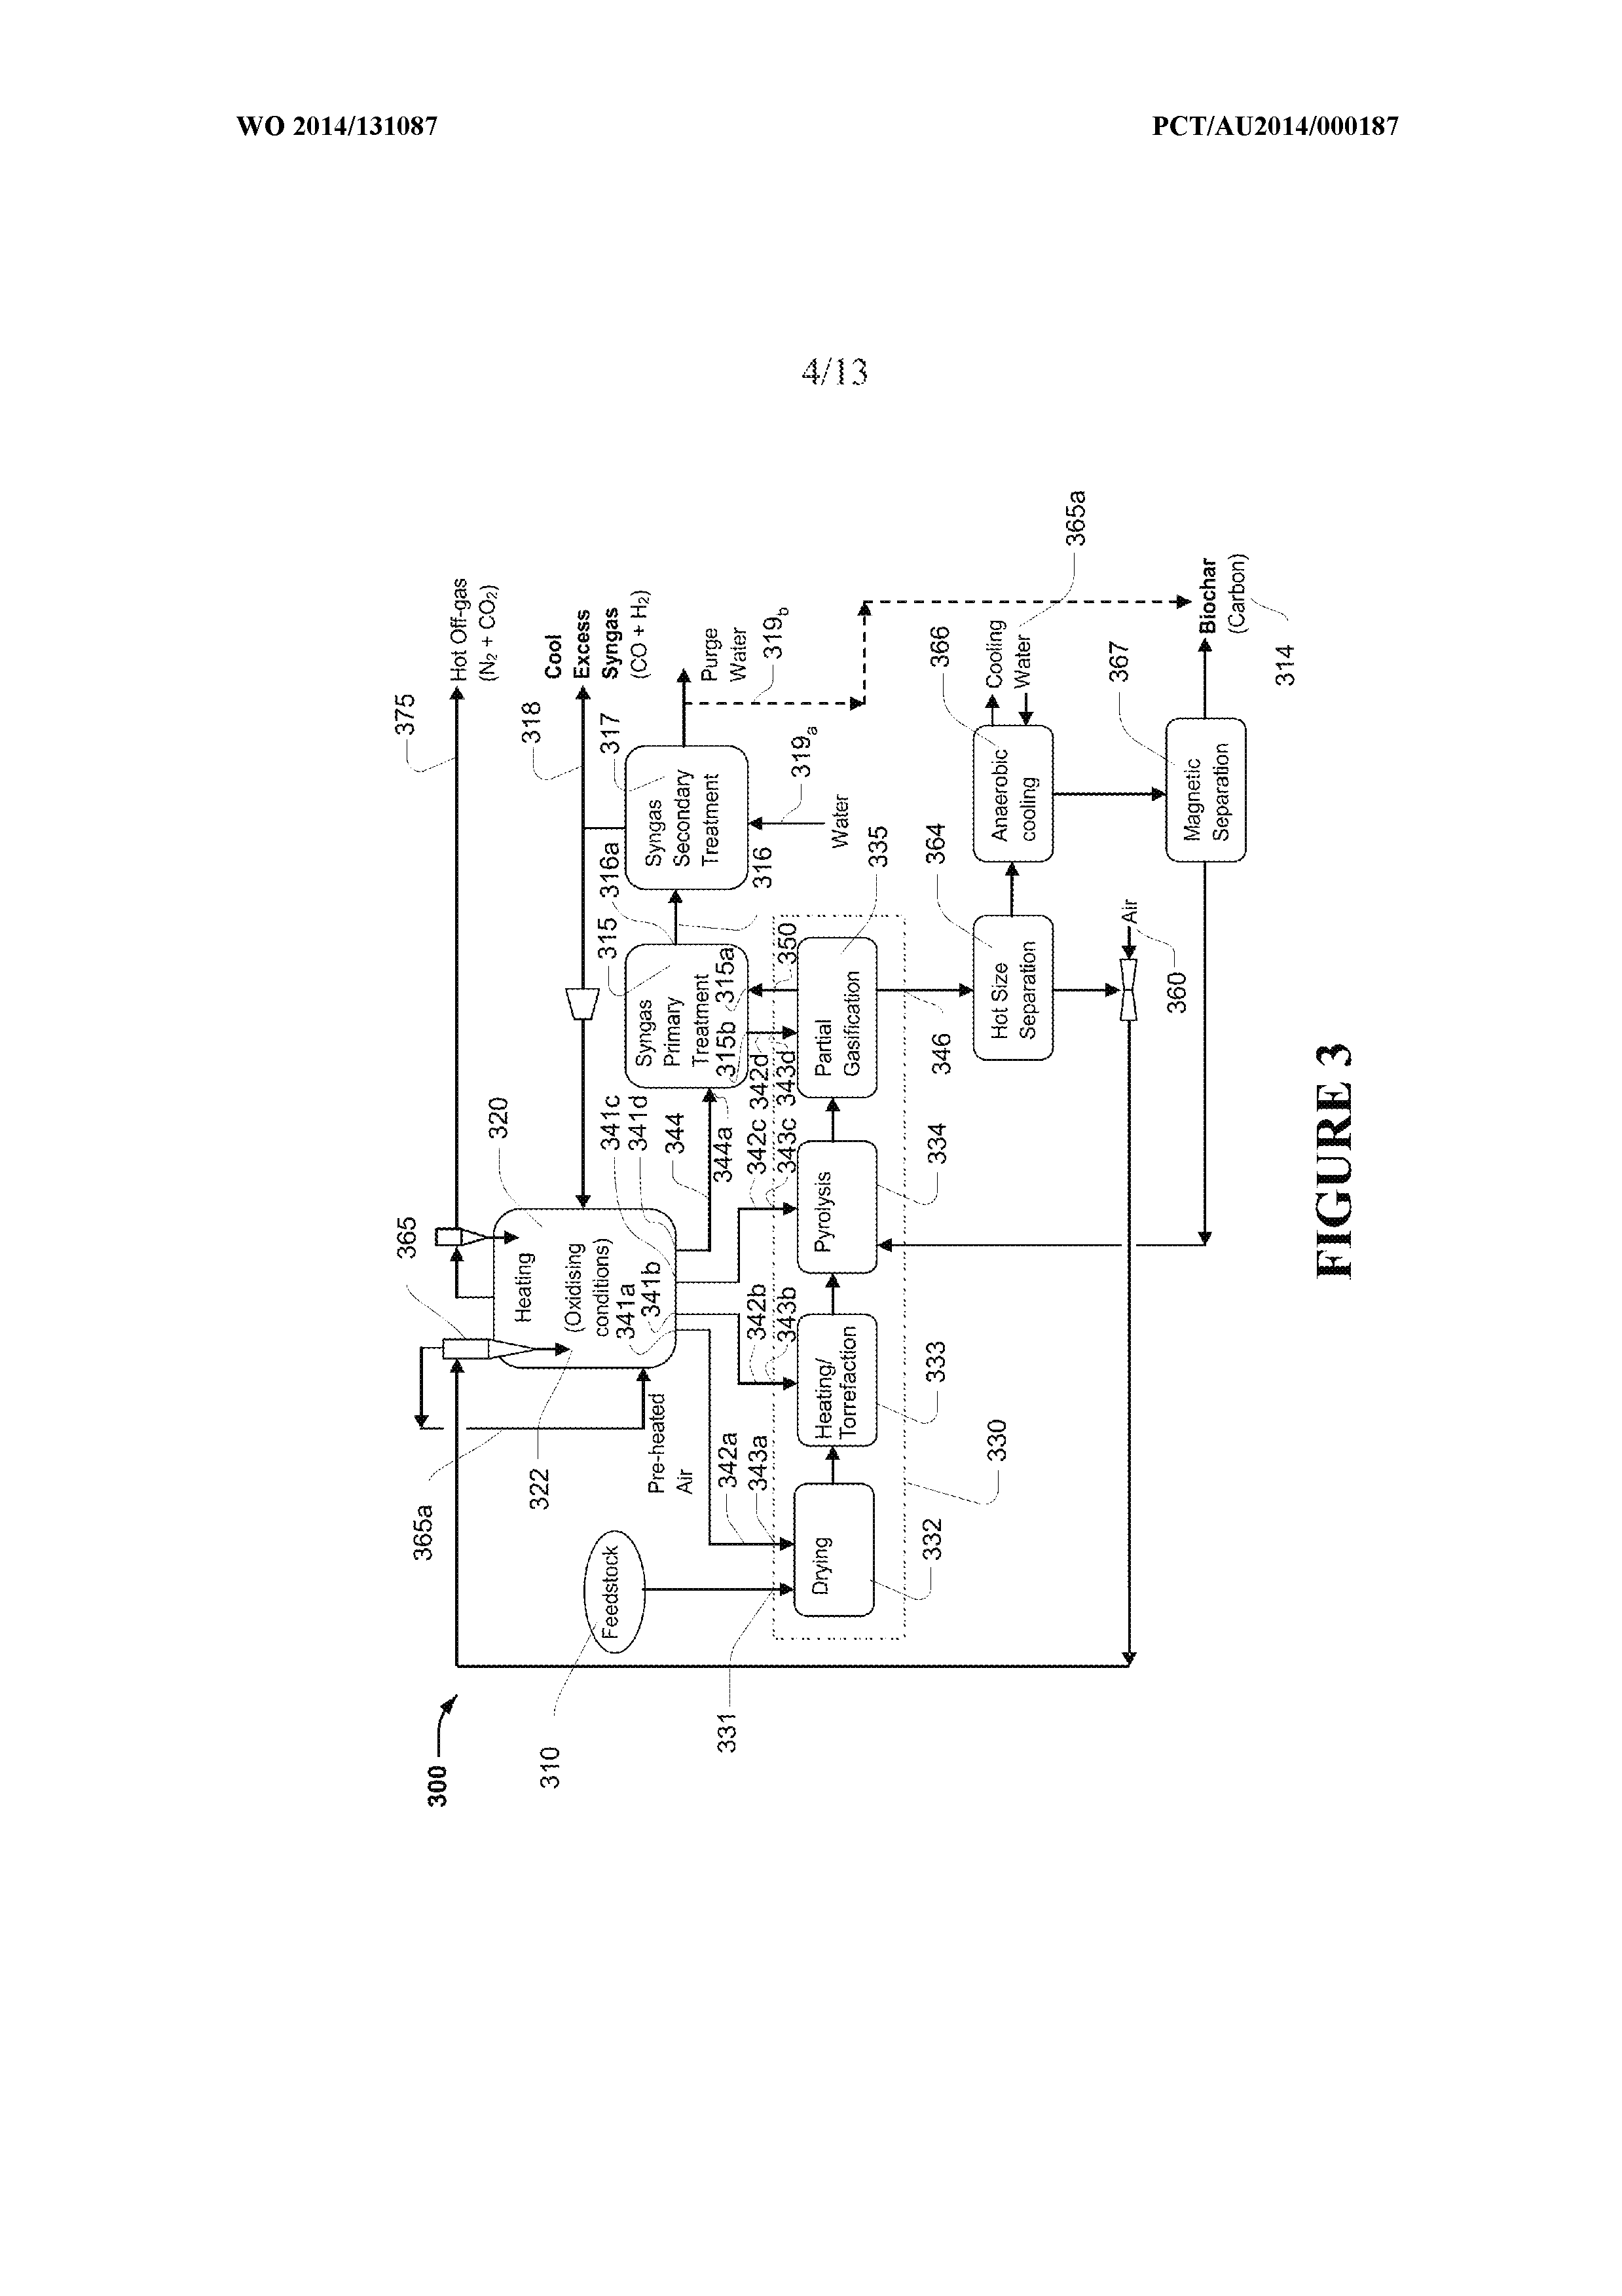 Method And Apparatus For Processing Carbonaceous Material